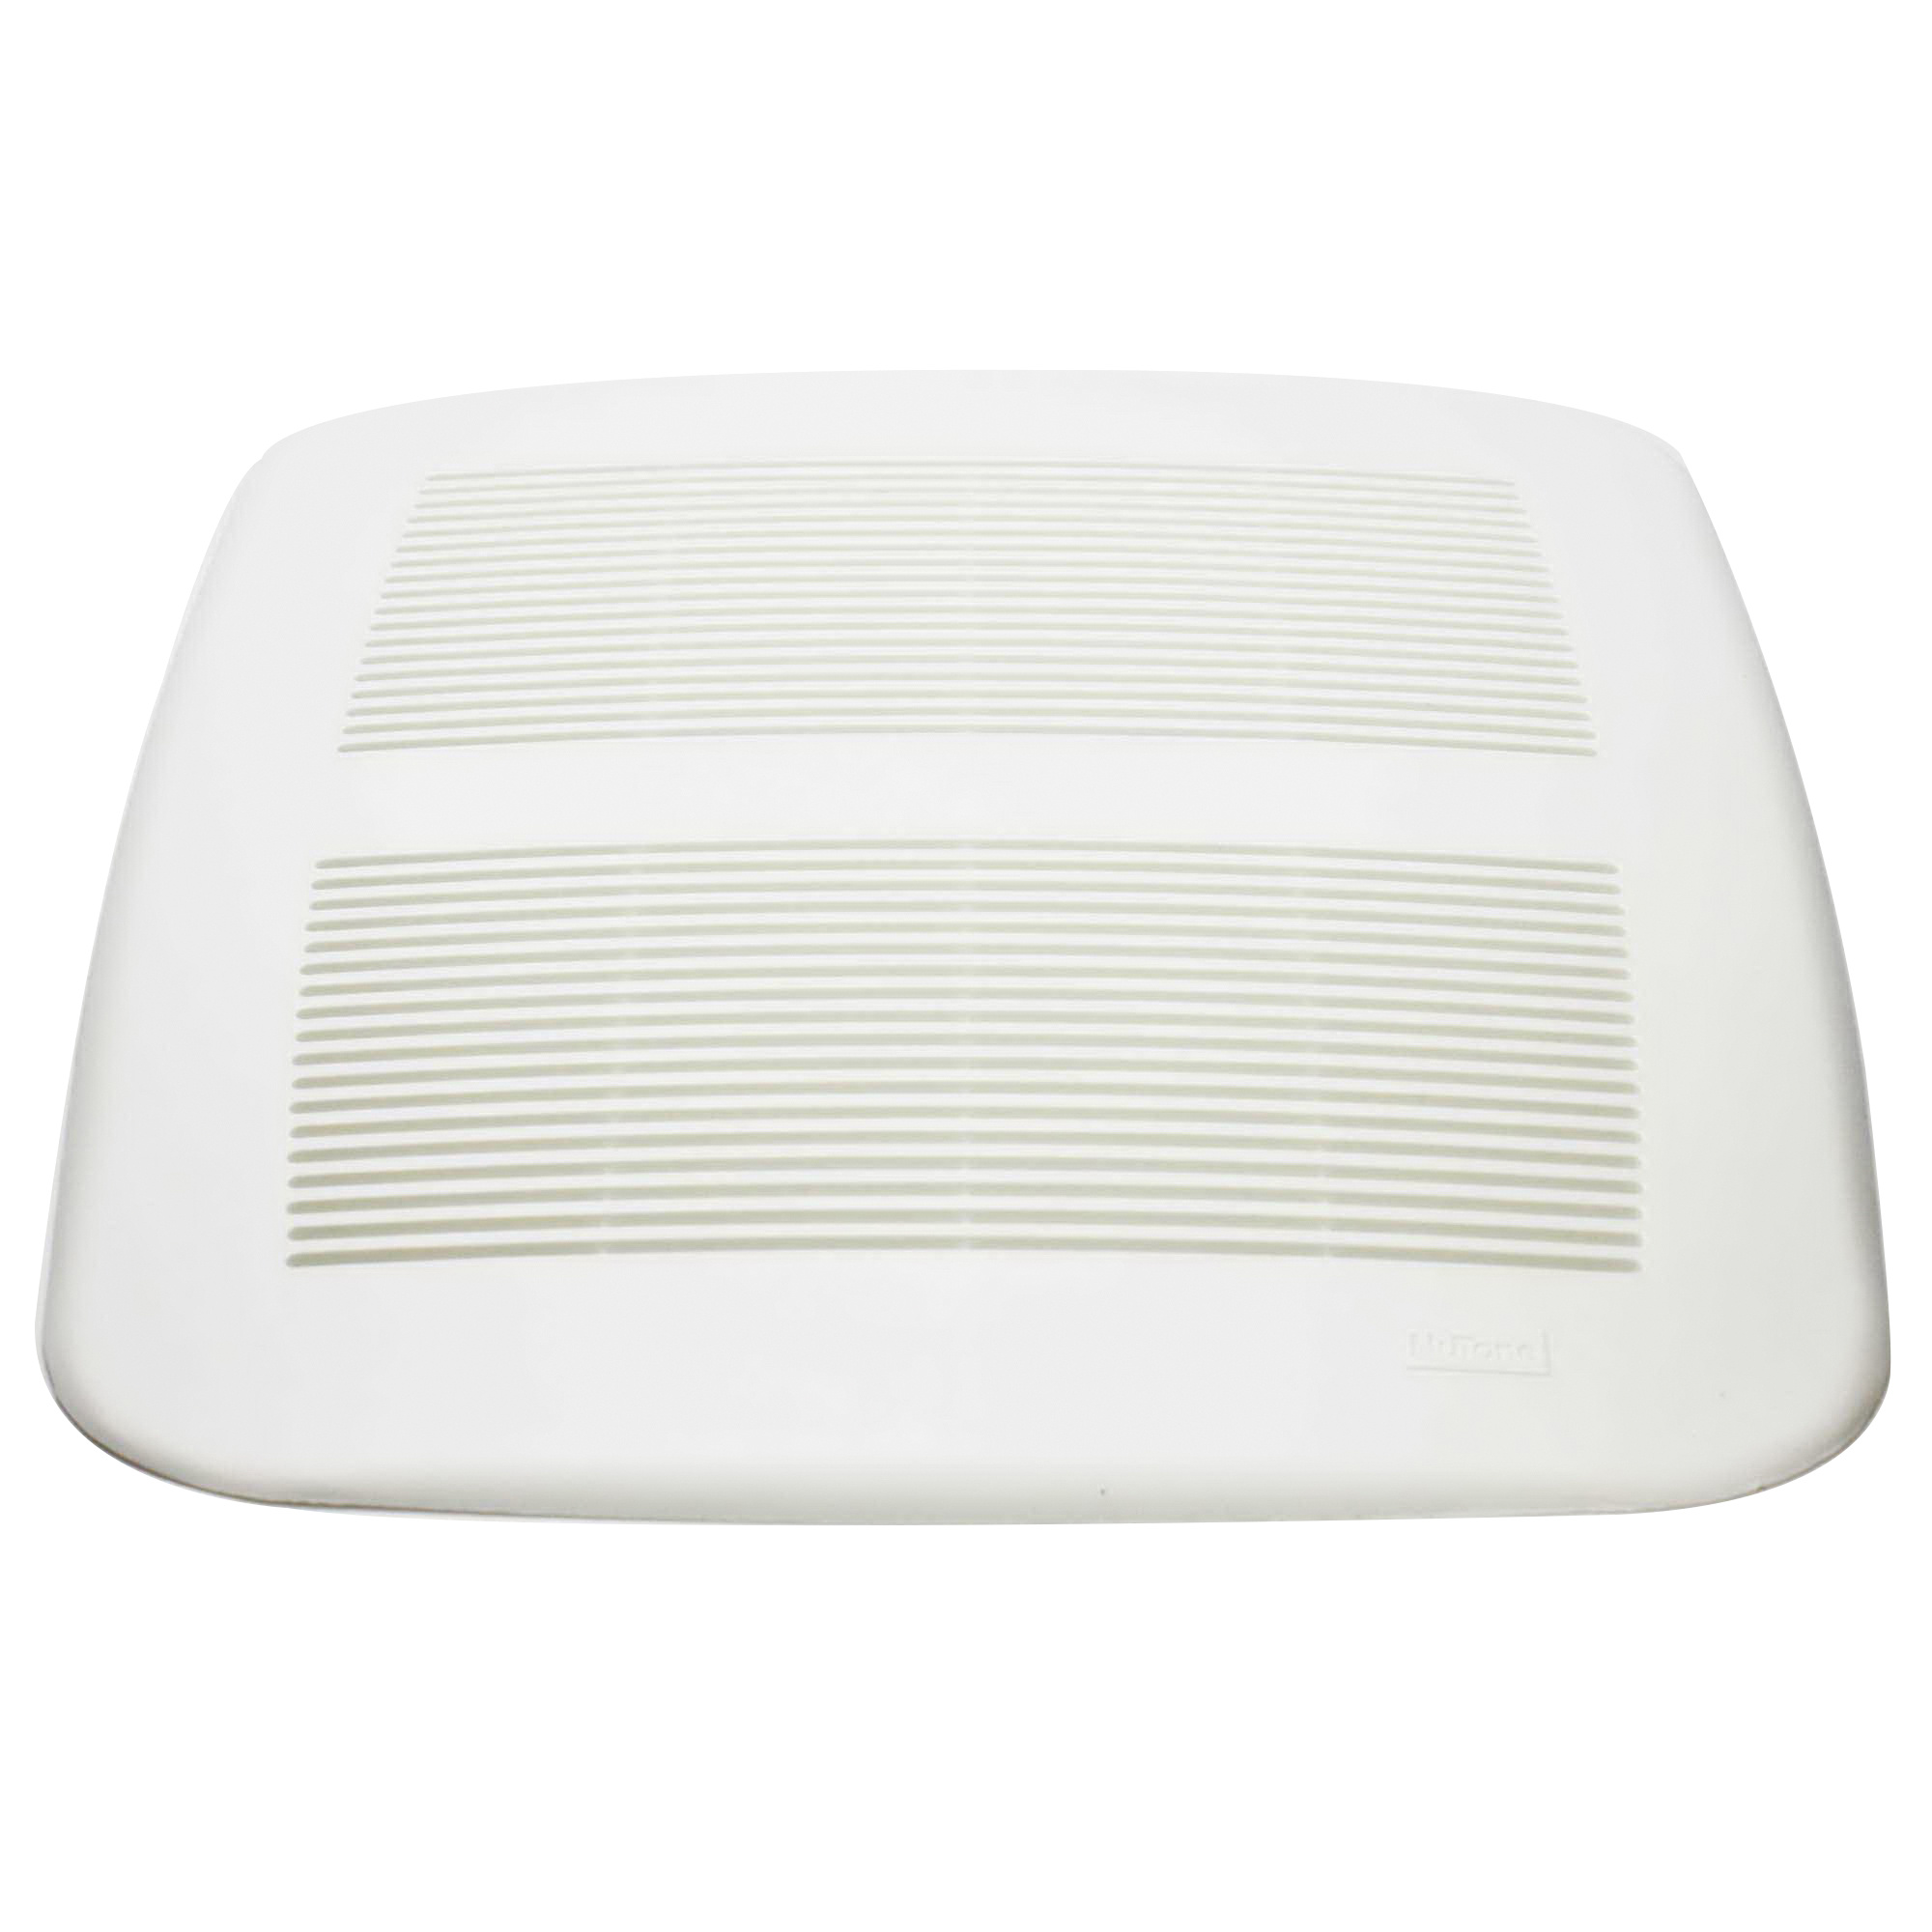 Nutone S84607000 Bathroom Vent Grille 14-Inch X 12-Inch